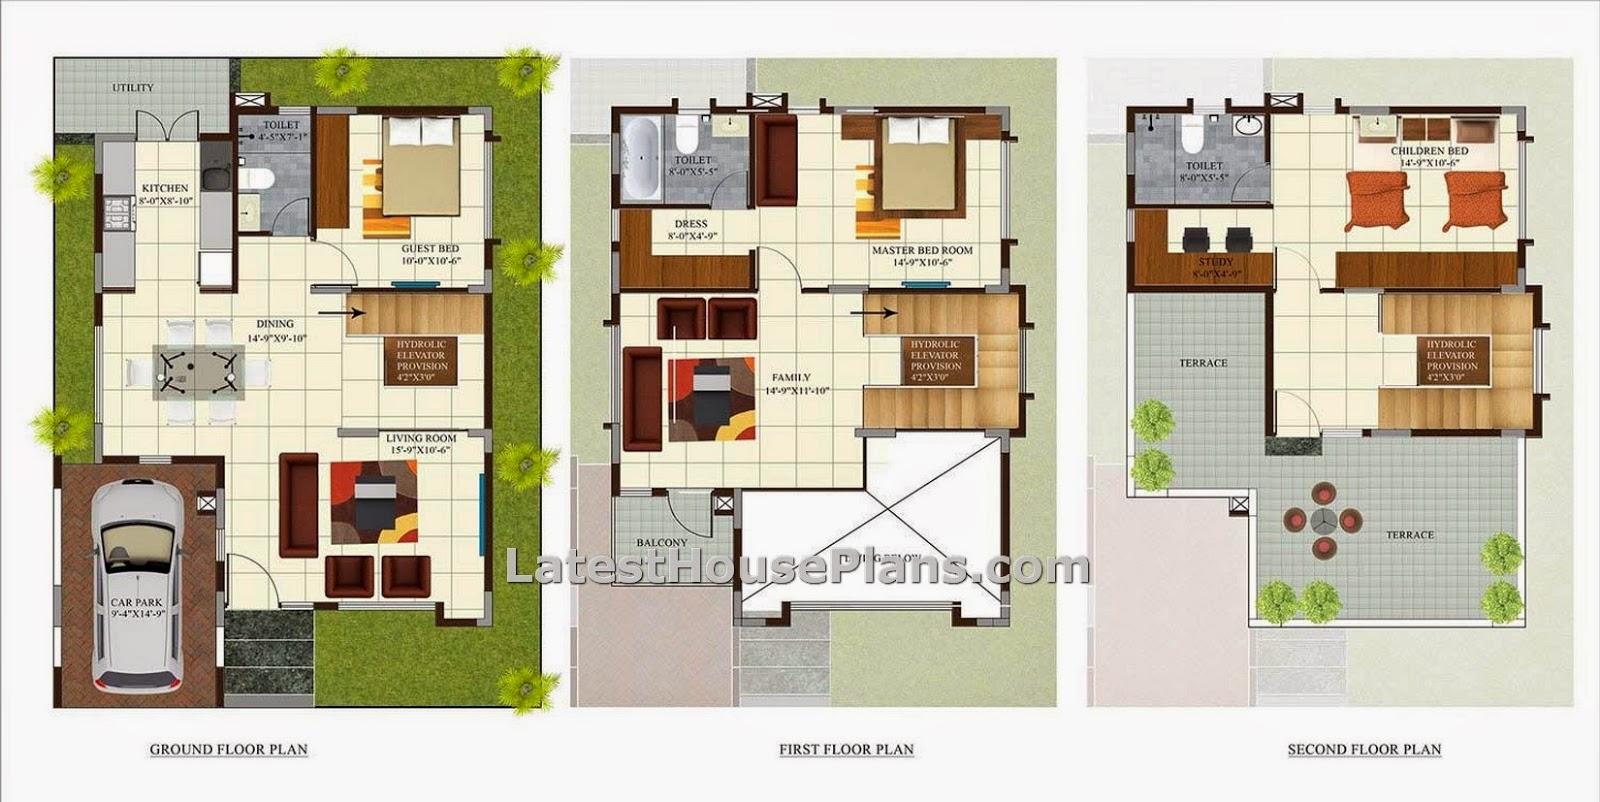 3 bedroom independant villa in 2100 sqft house plan 3 bedroom villa floor plans